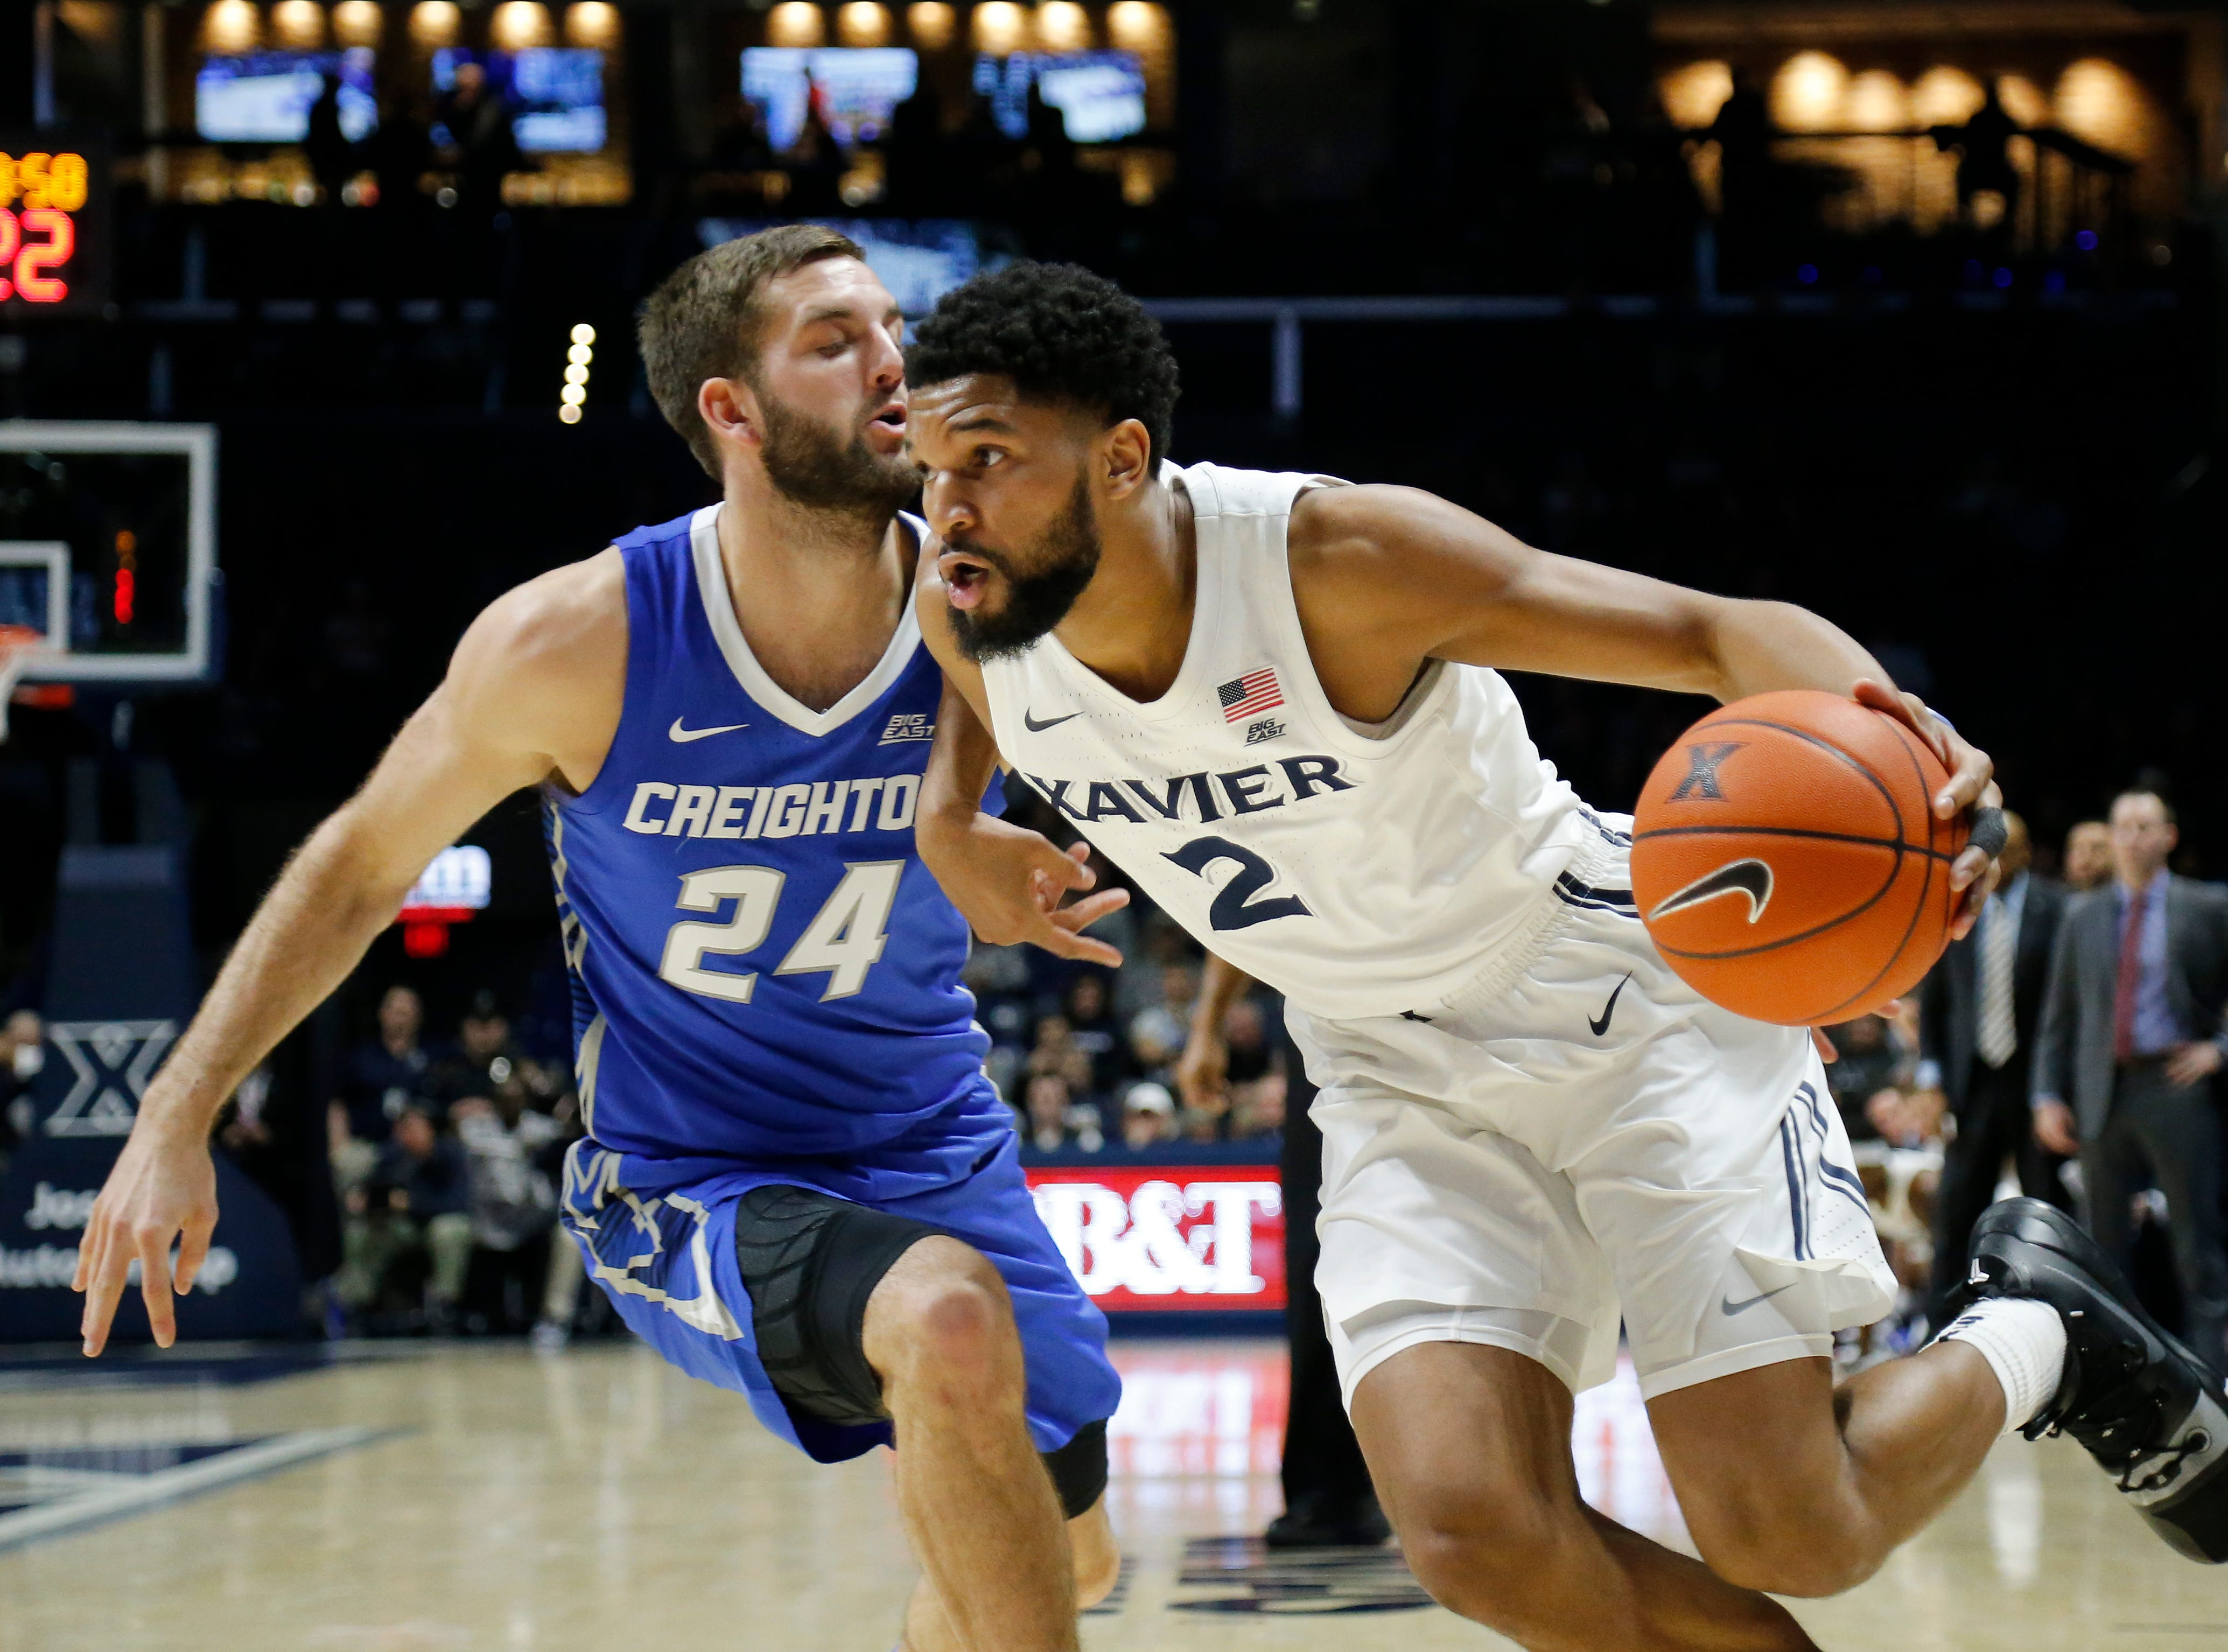 Xavier Musketeers guard Kyle Castlin (2) drives along the baseline against Creighton Bluejays guard Mitch Ballock (24) in the first half of the NCAA Big East Conference basketball game between the Xavier Musketeers and the Creighton Bluejays at Xavier's Cintas Center in Cincinnati on Wednesday, Feb. 13, 2019. Xavier led 36-30 at halftime.